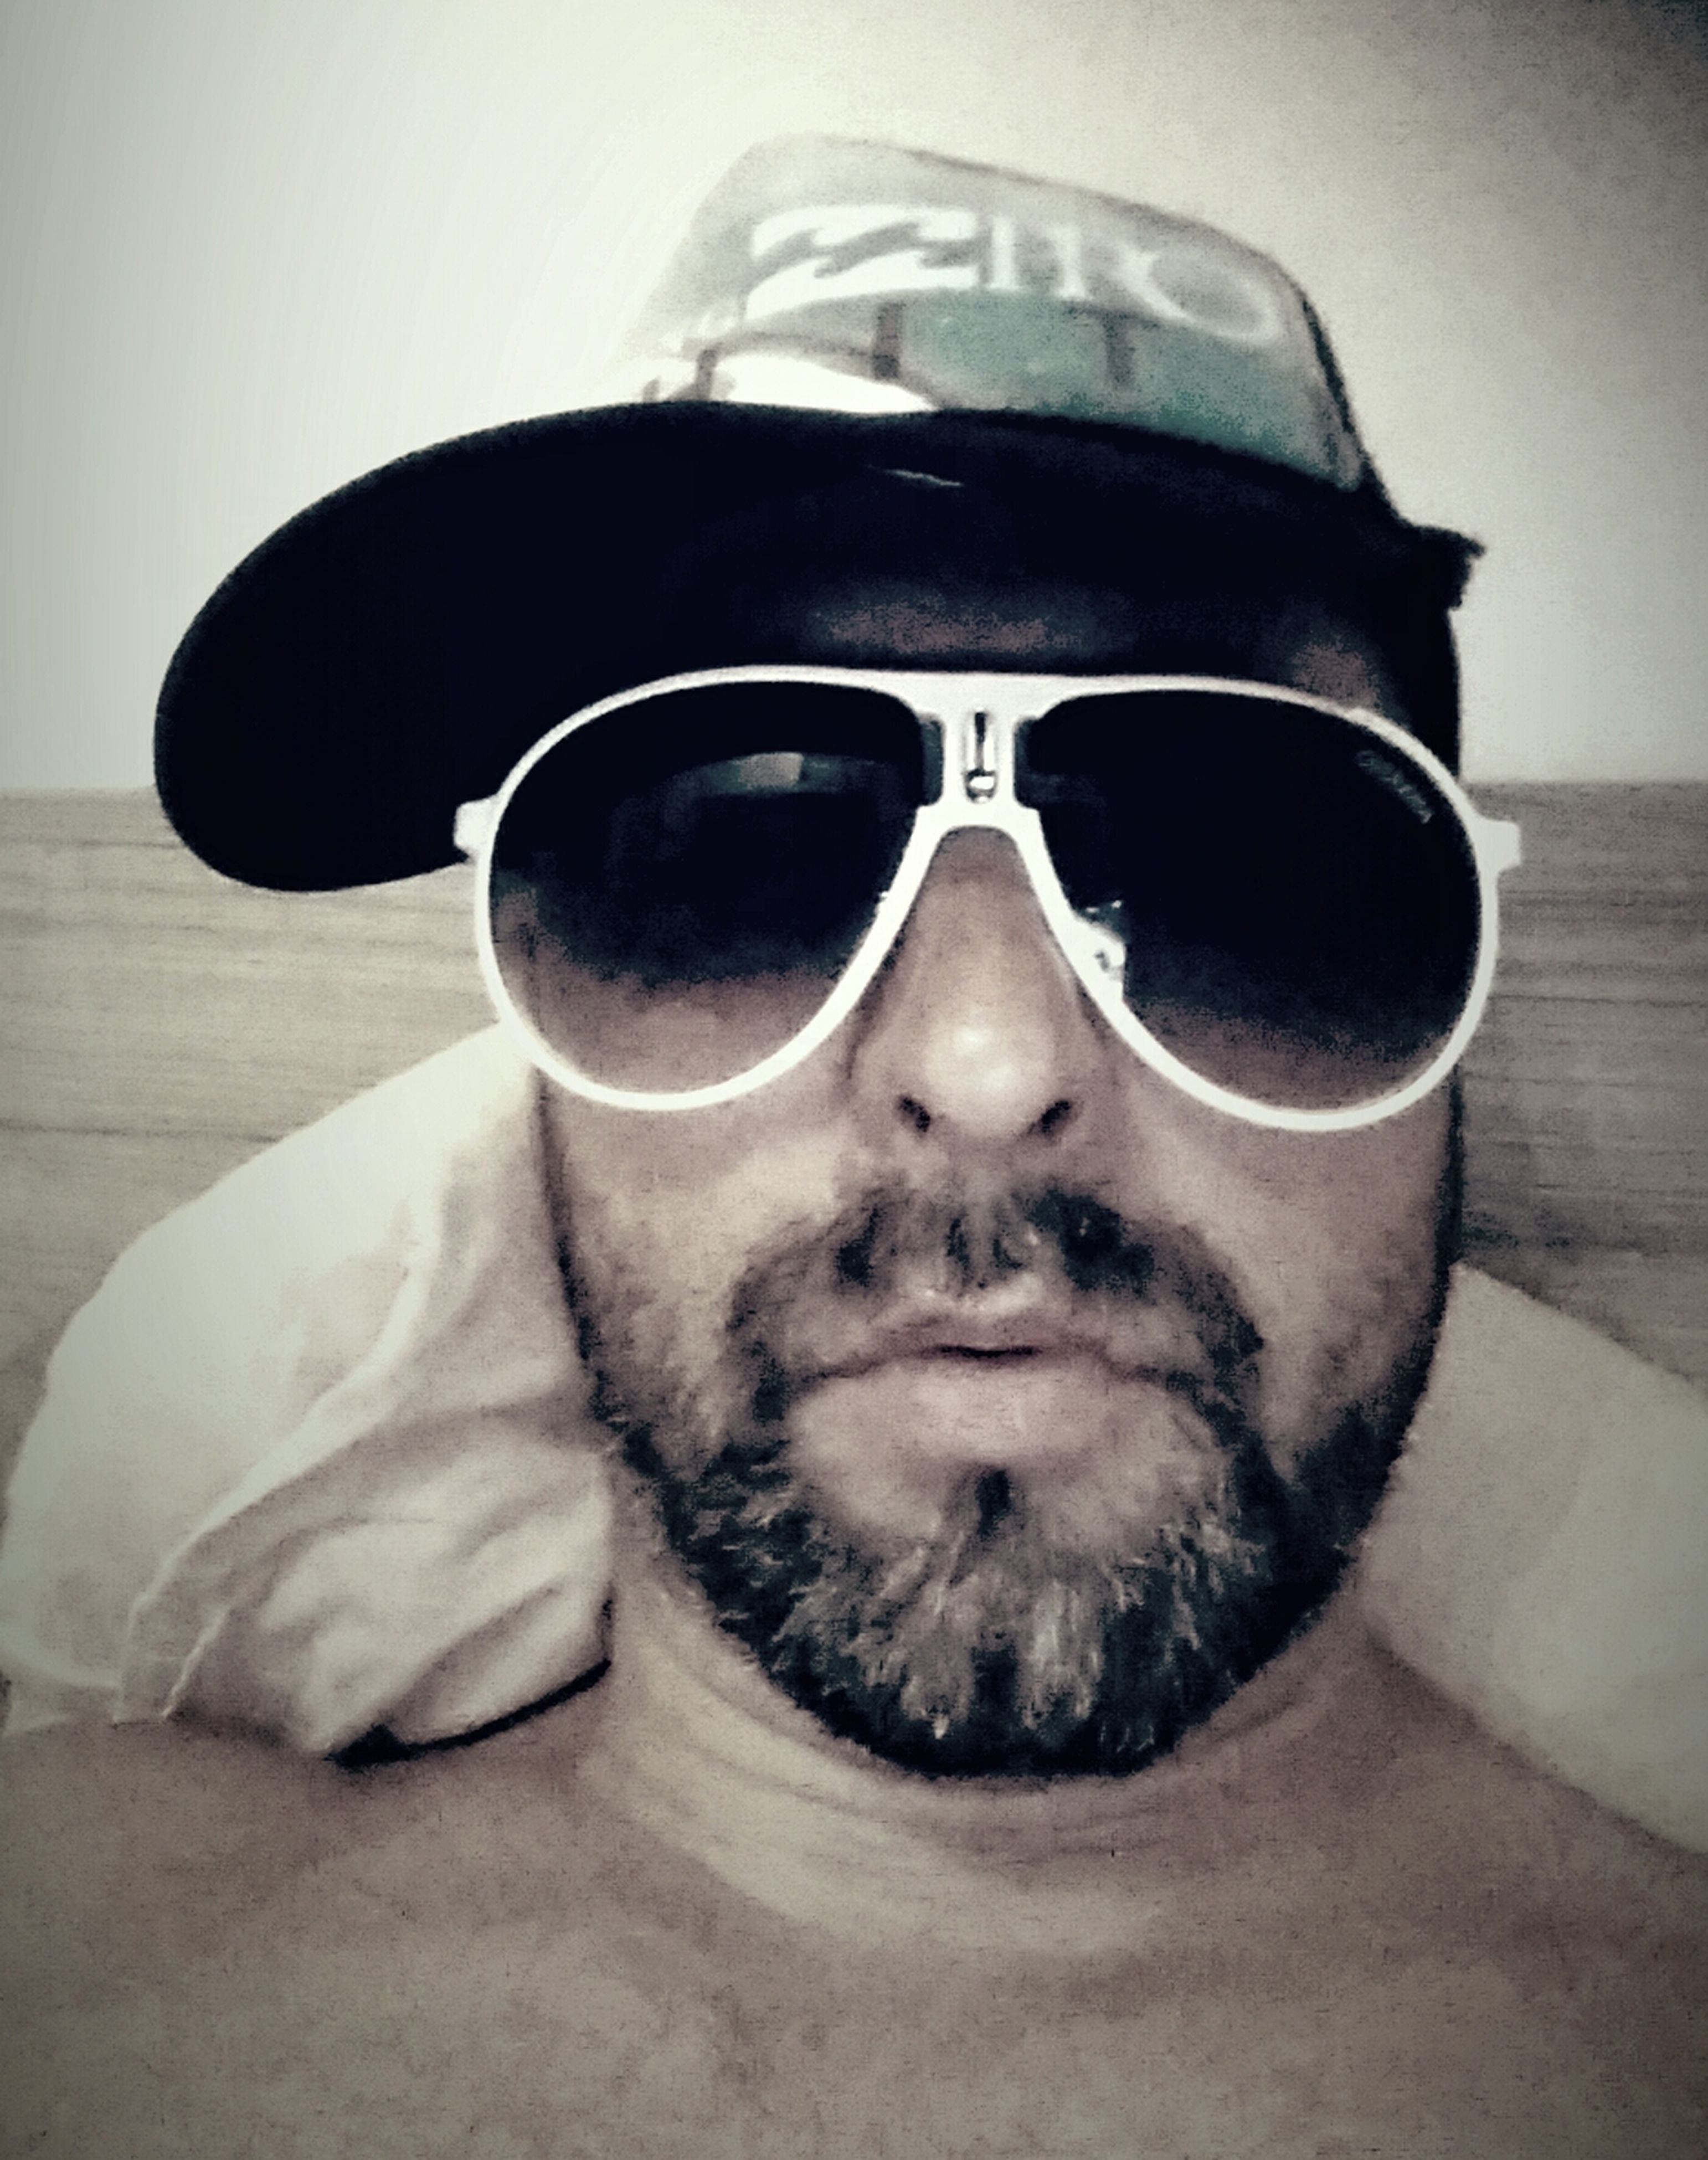 sunglasses, looking at camera, portrait, lifestyles, close-up, reflection, headshot, front view, eyeglasses, leisure activity, person, car, young adult, young men, mid adult men, transportation, indoors, beard